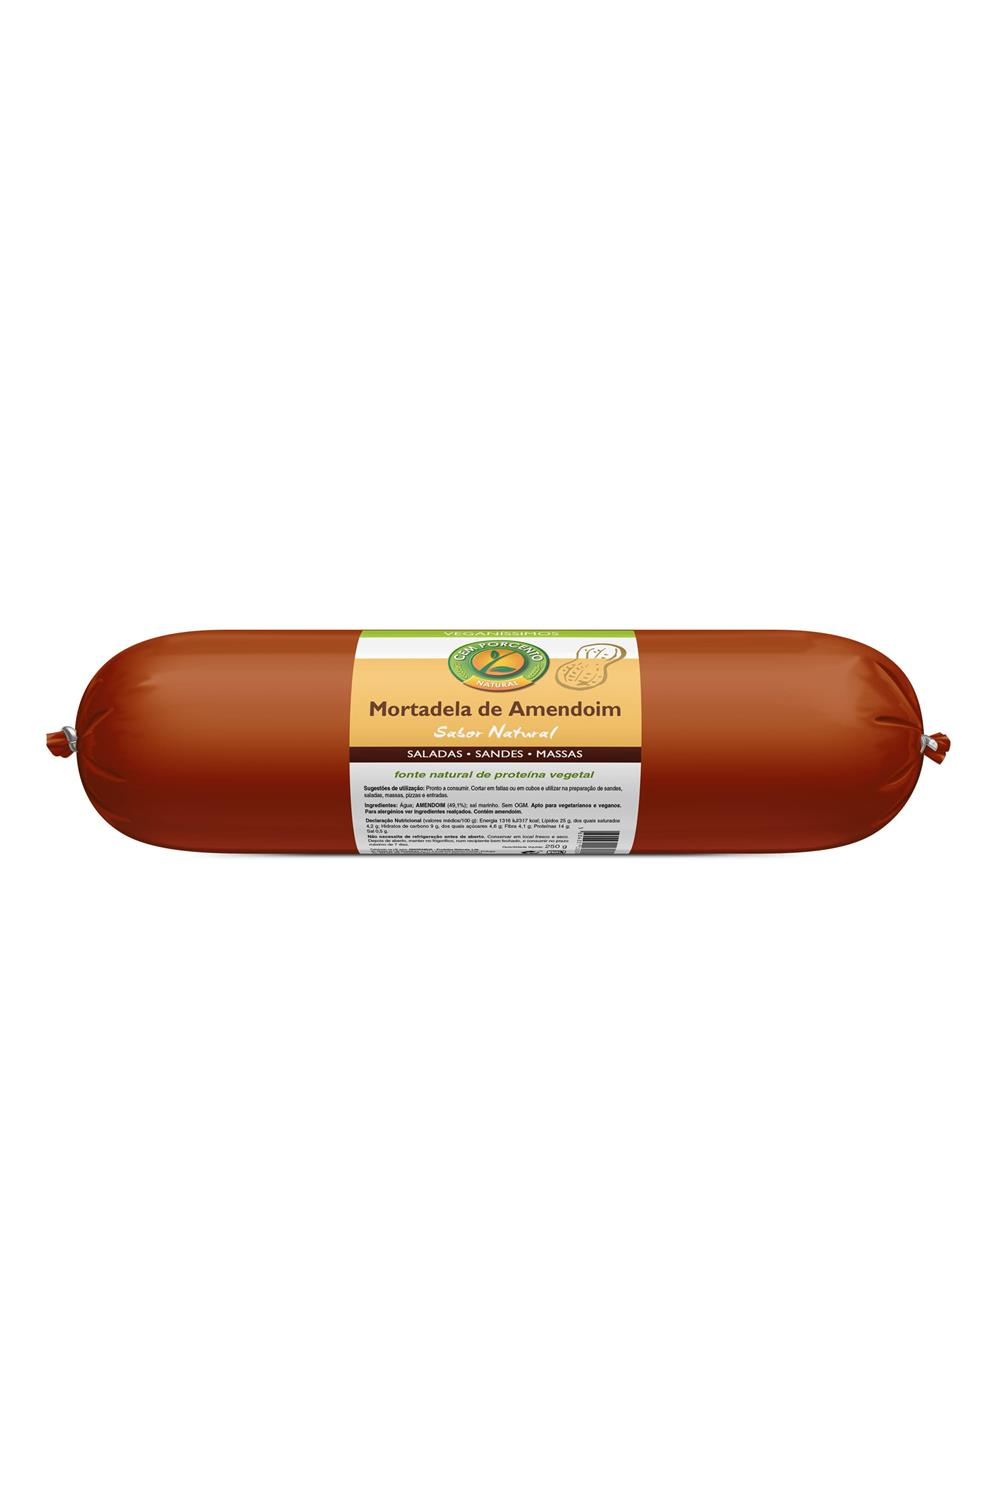 mortadela de amendoim vegan 250g